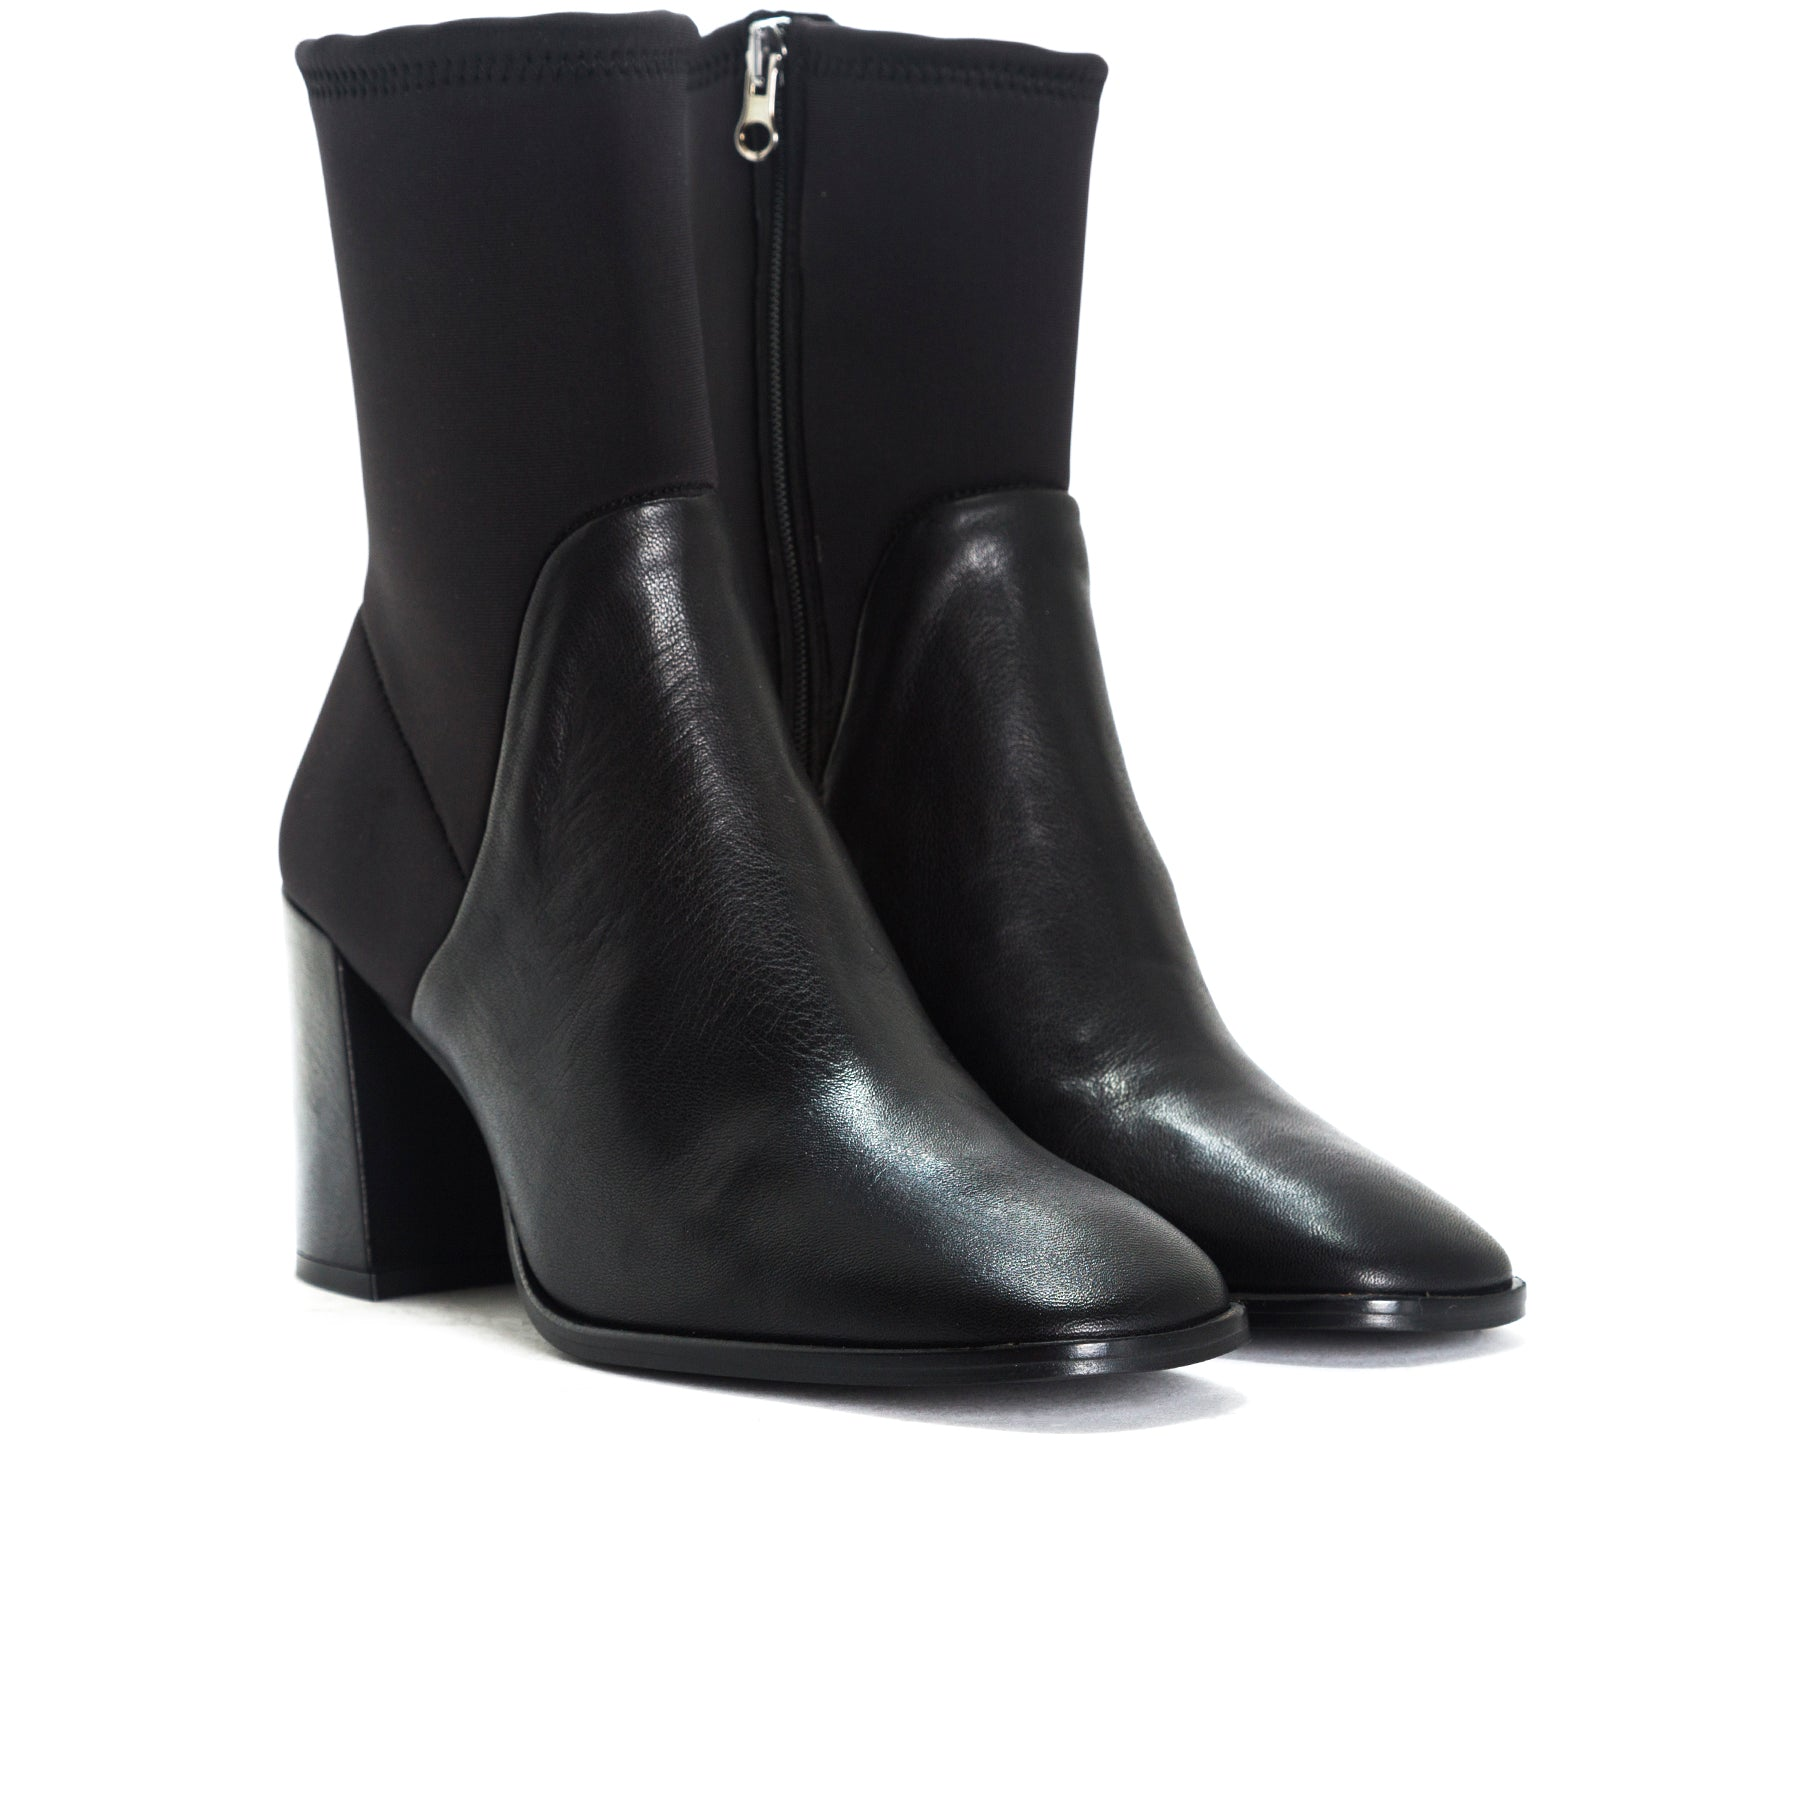 Zadar Black Leather/Neoprene Booties